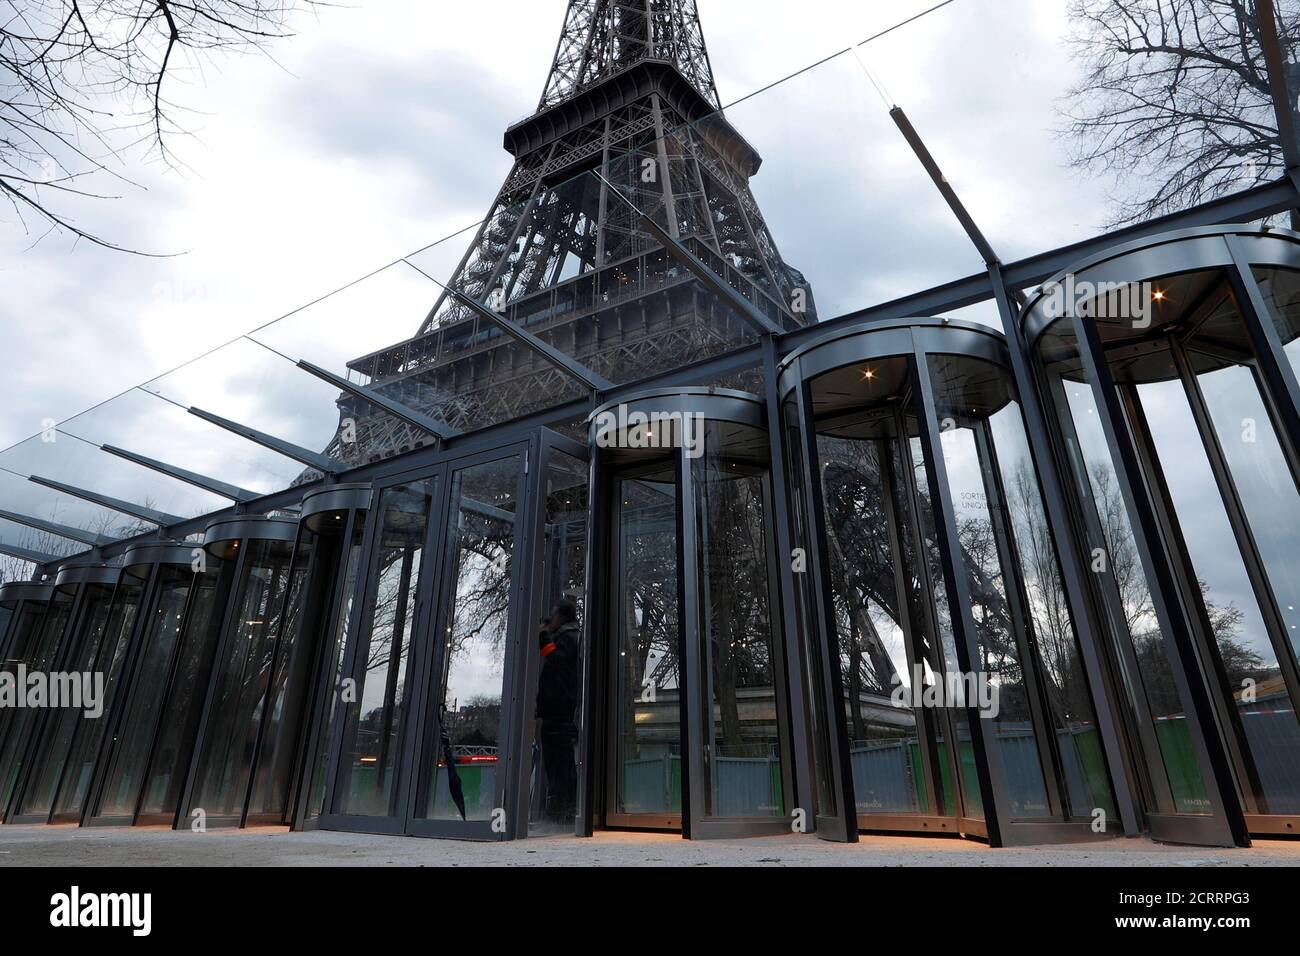 New control glass gates are seen at the bottom of the Eiffel Tower in Paris, France, March 31, 2018. REUTERS/Gonzalo Fuentes Stock Photo